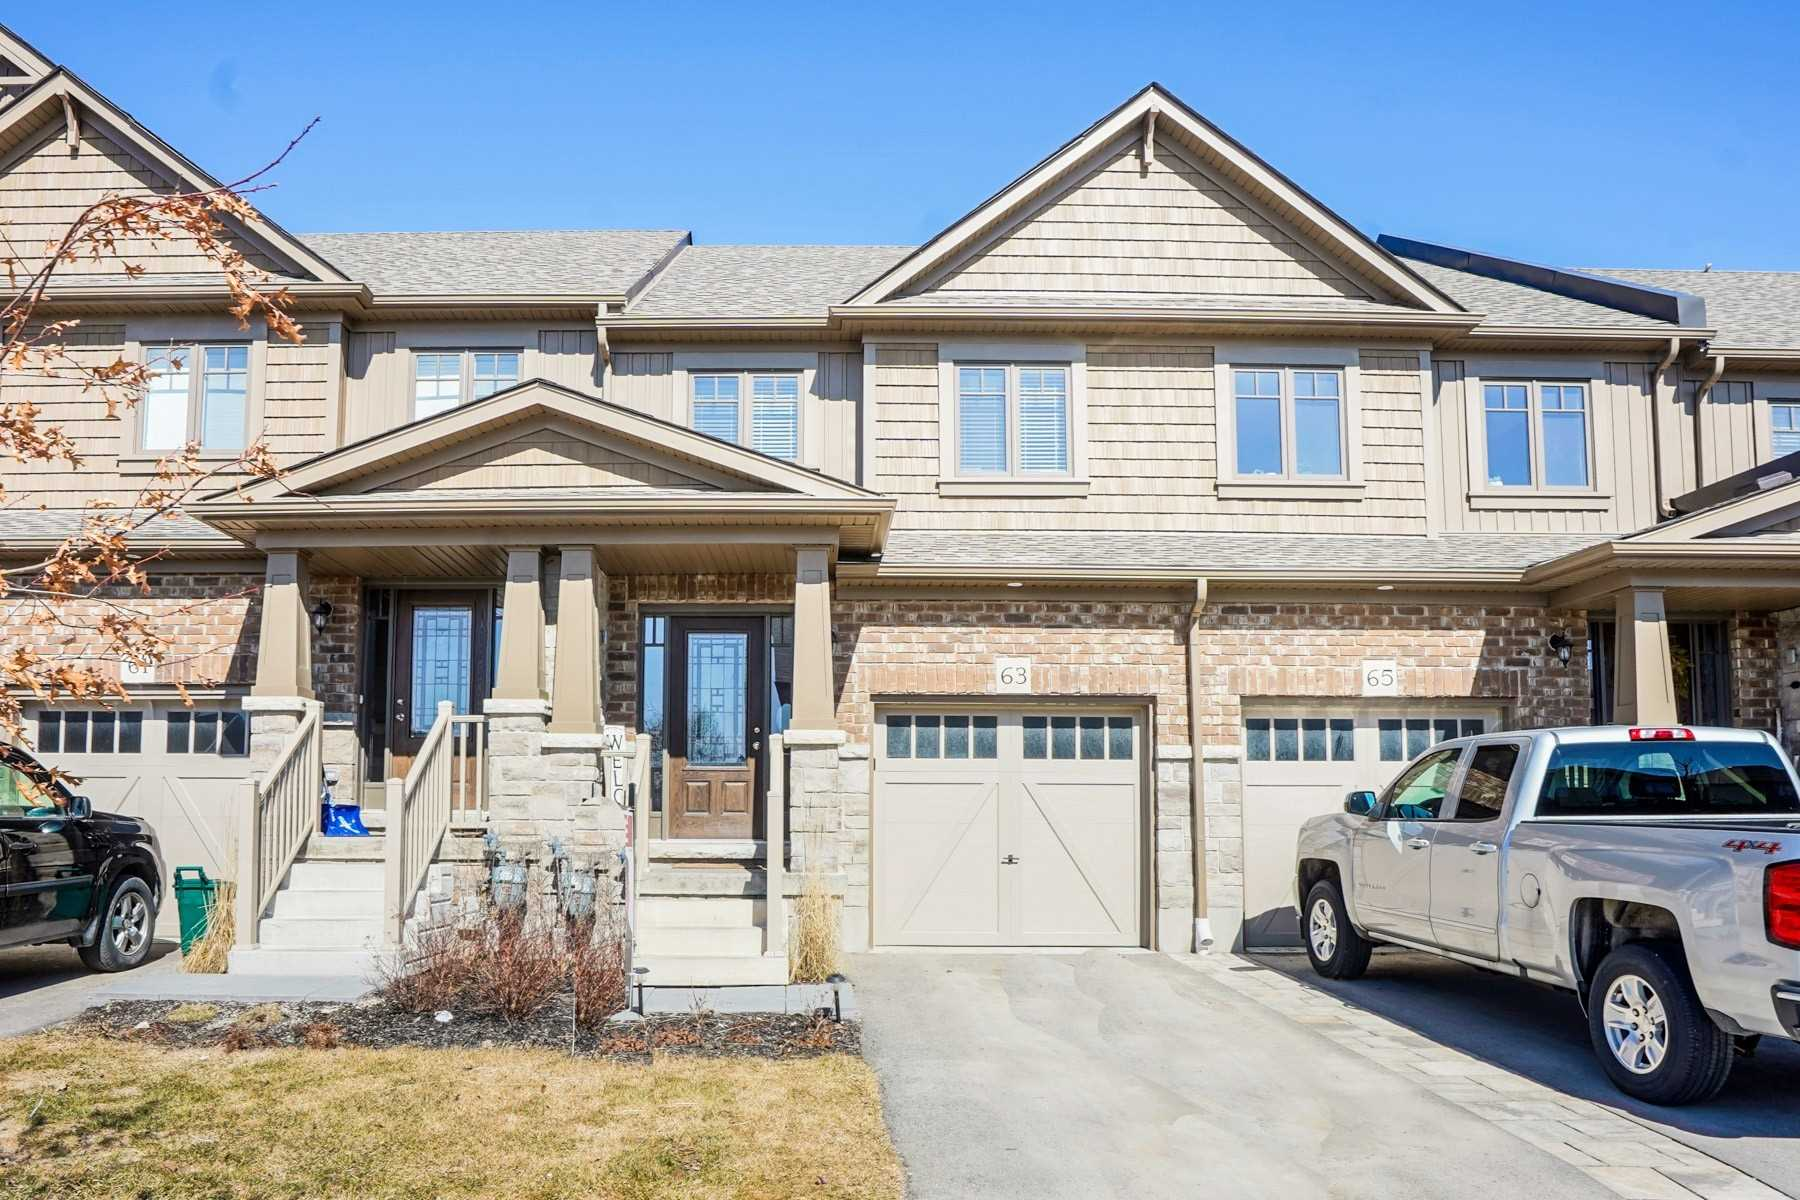 pictures of house for sale MLS: W4732496 located at 63 Winterton Crt, Orangeville L9W7N5